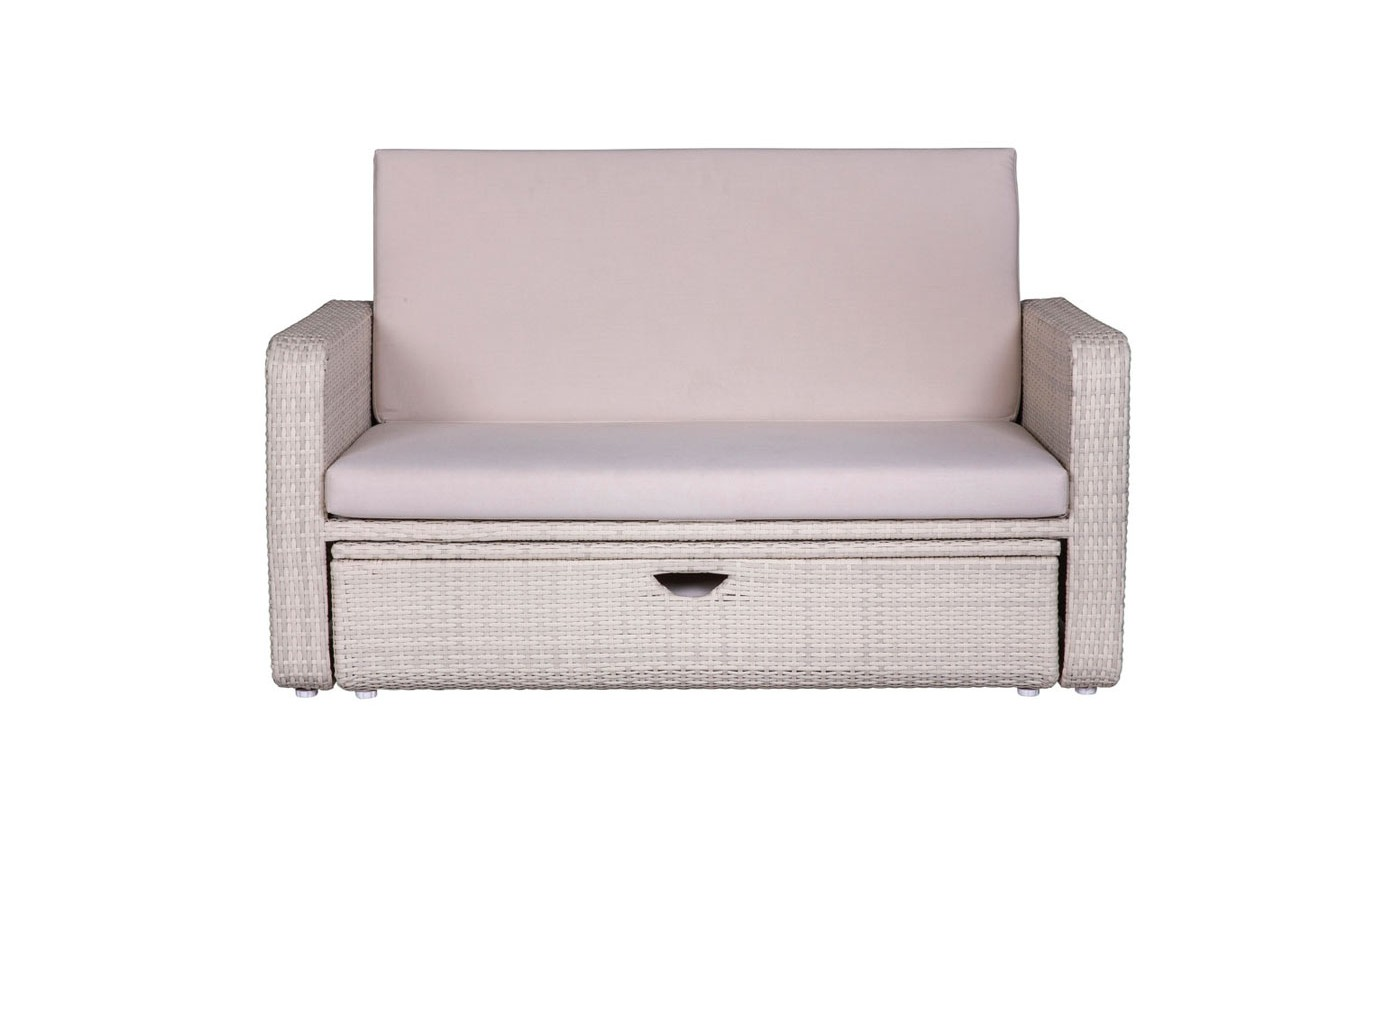 Multifunctional Couch white